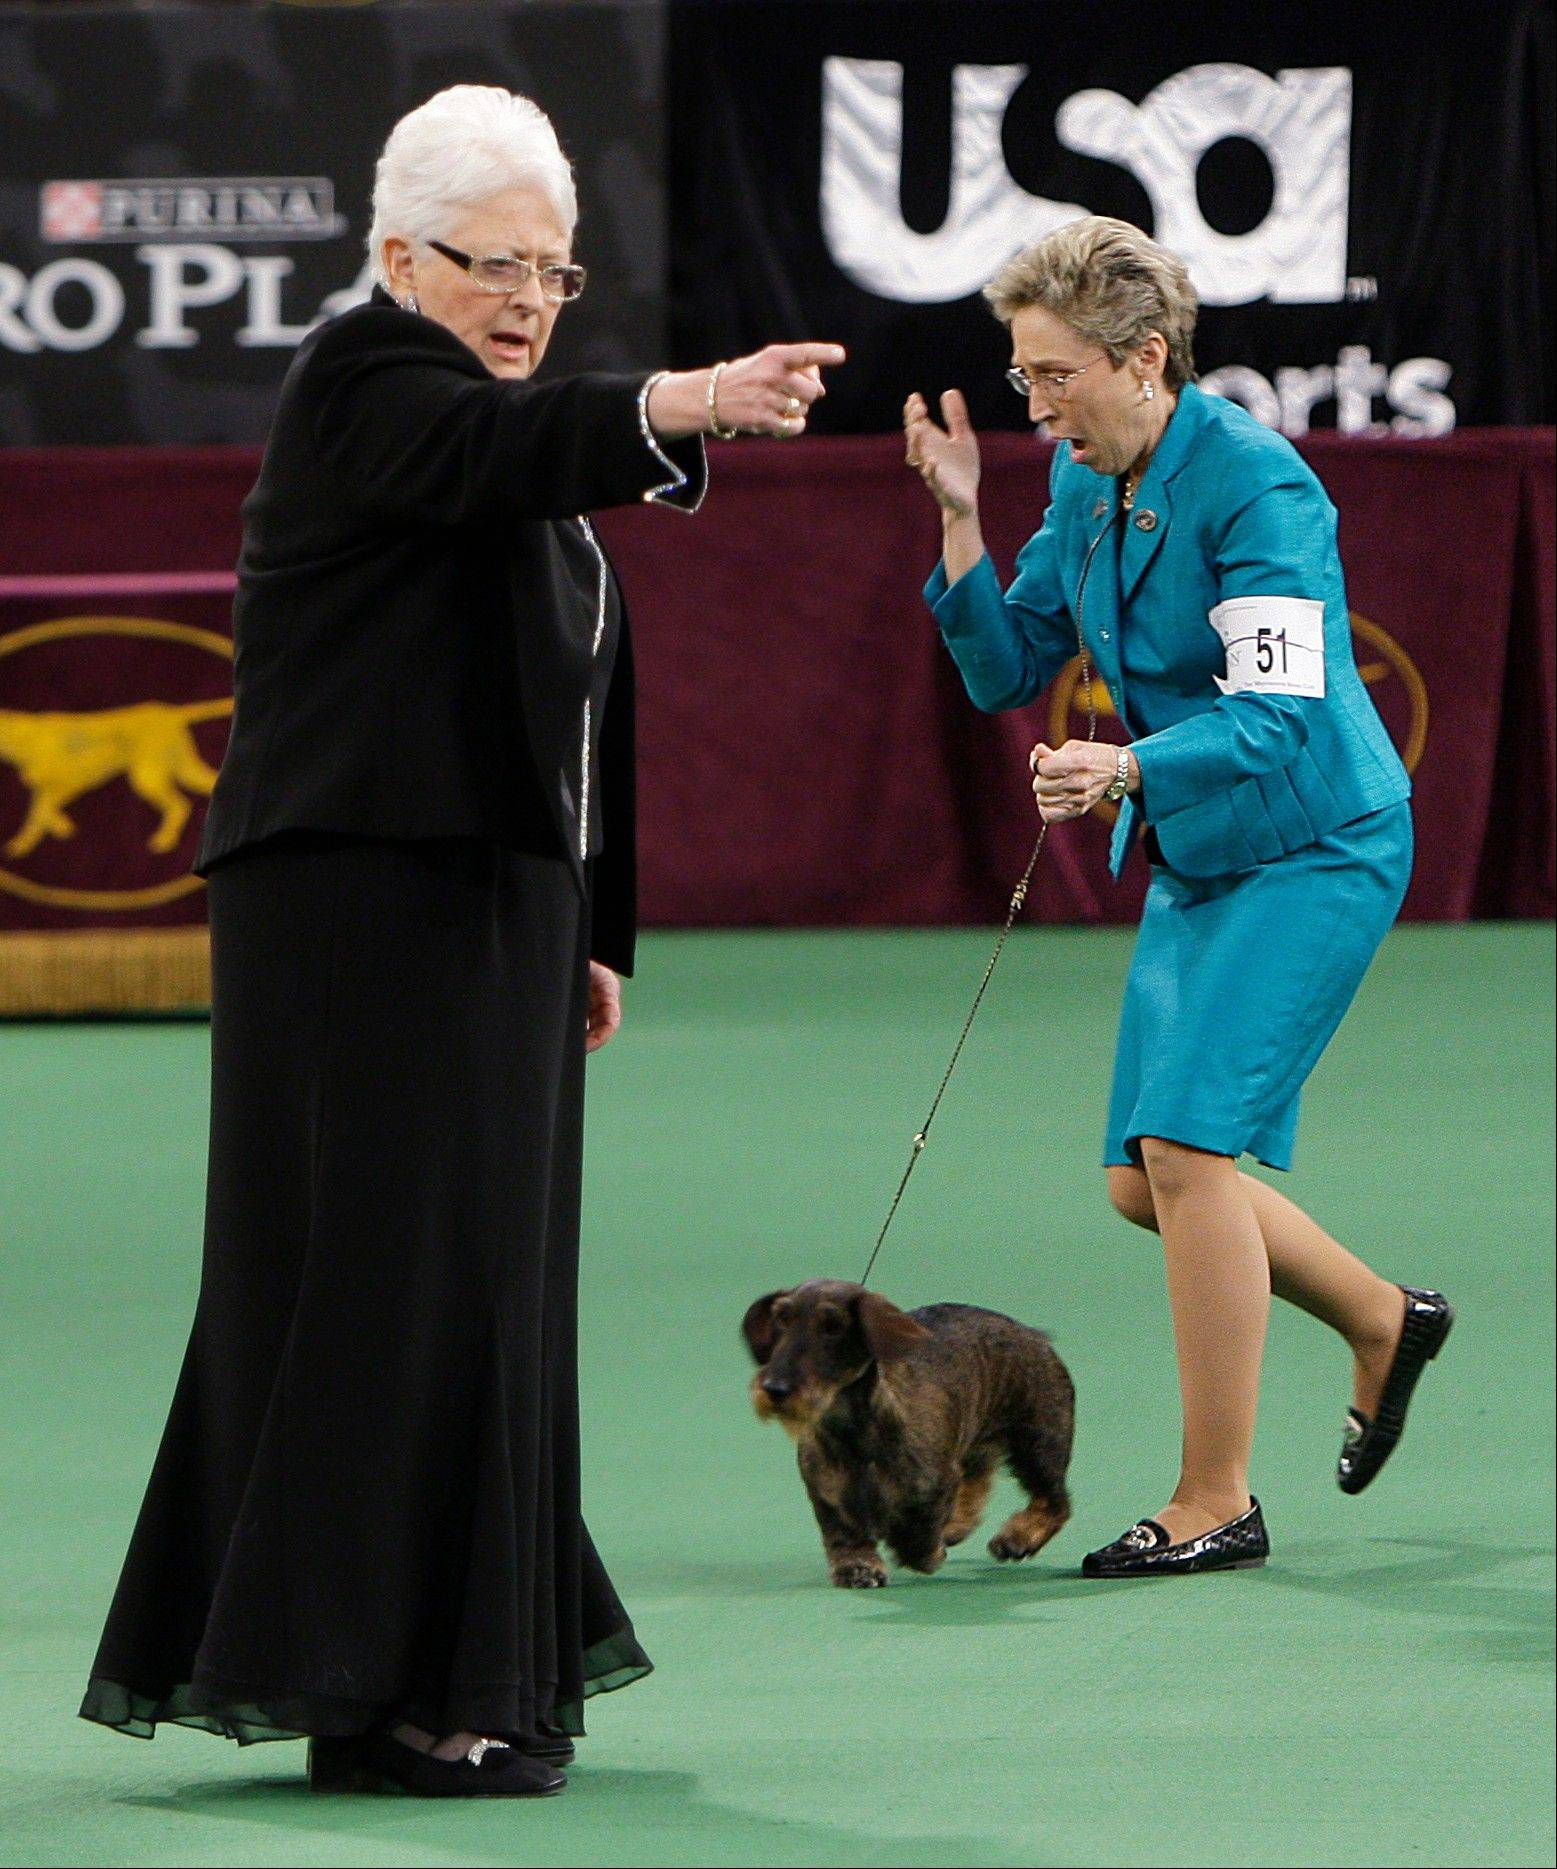 Handler Cheri Koppenhaver, right, reacts after judge Patricia Laurans, left, declared Cinders, a wirehaired dachshund, the winner of the hound group .